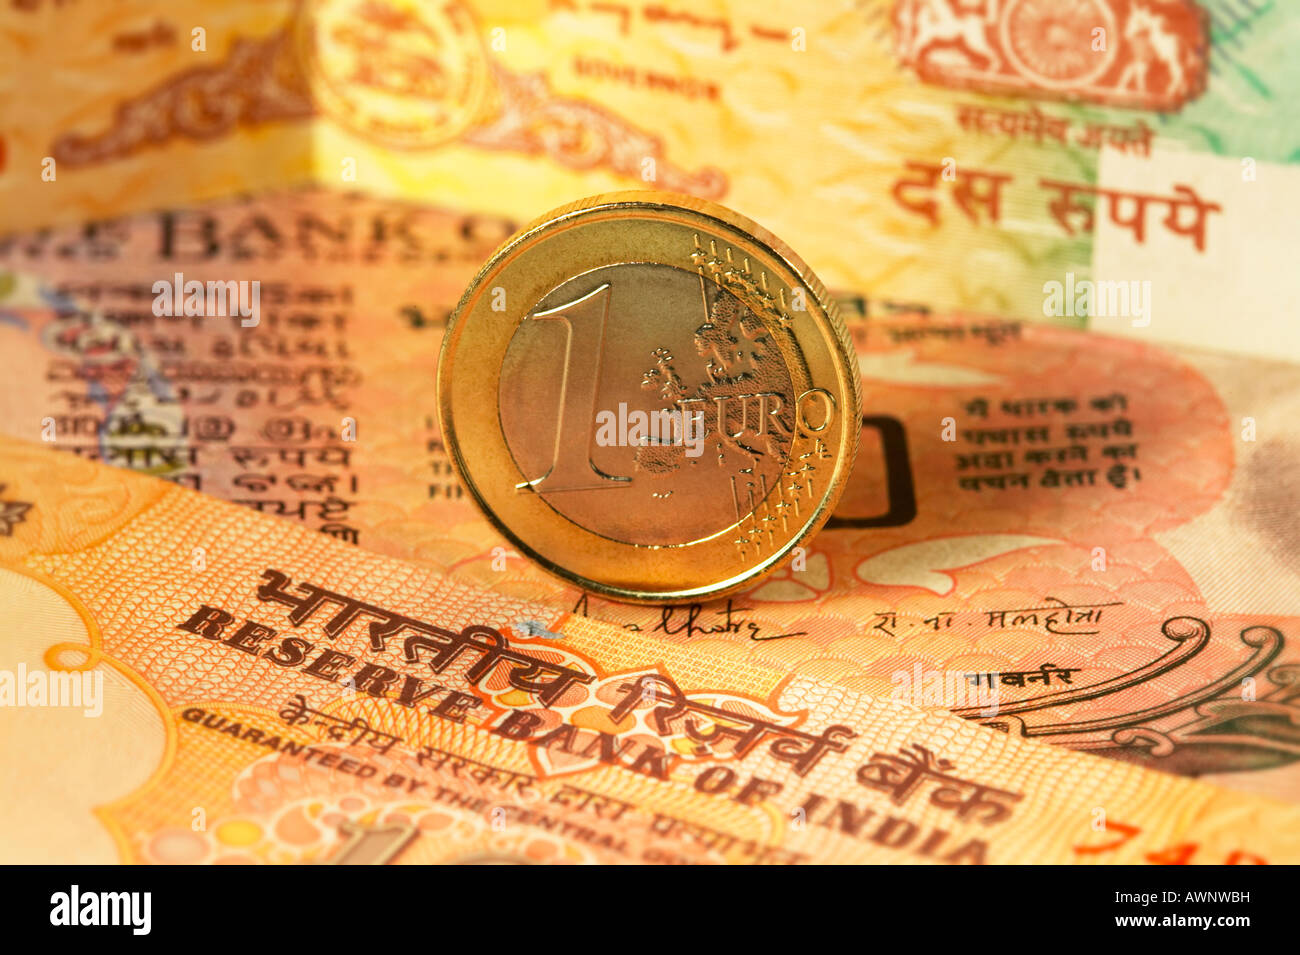 Euro Coin Indian Rupee Bank notes close up - Stock Image